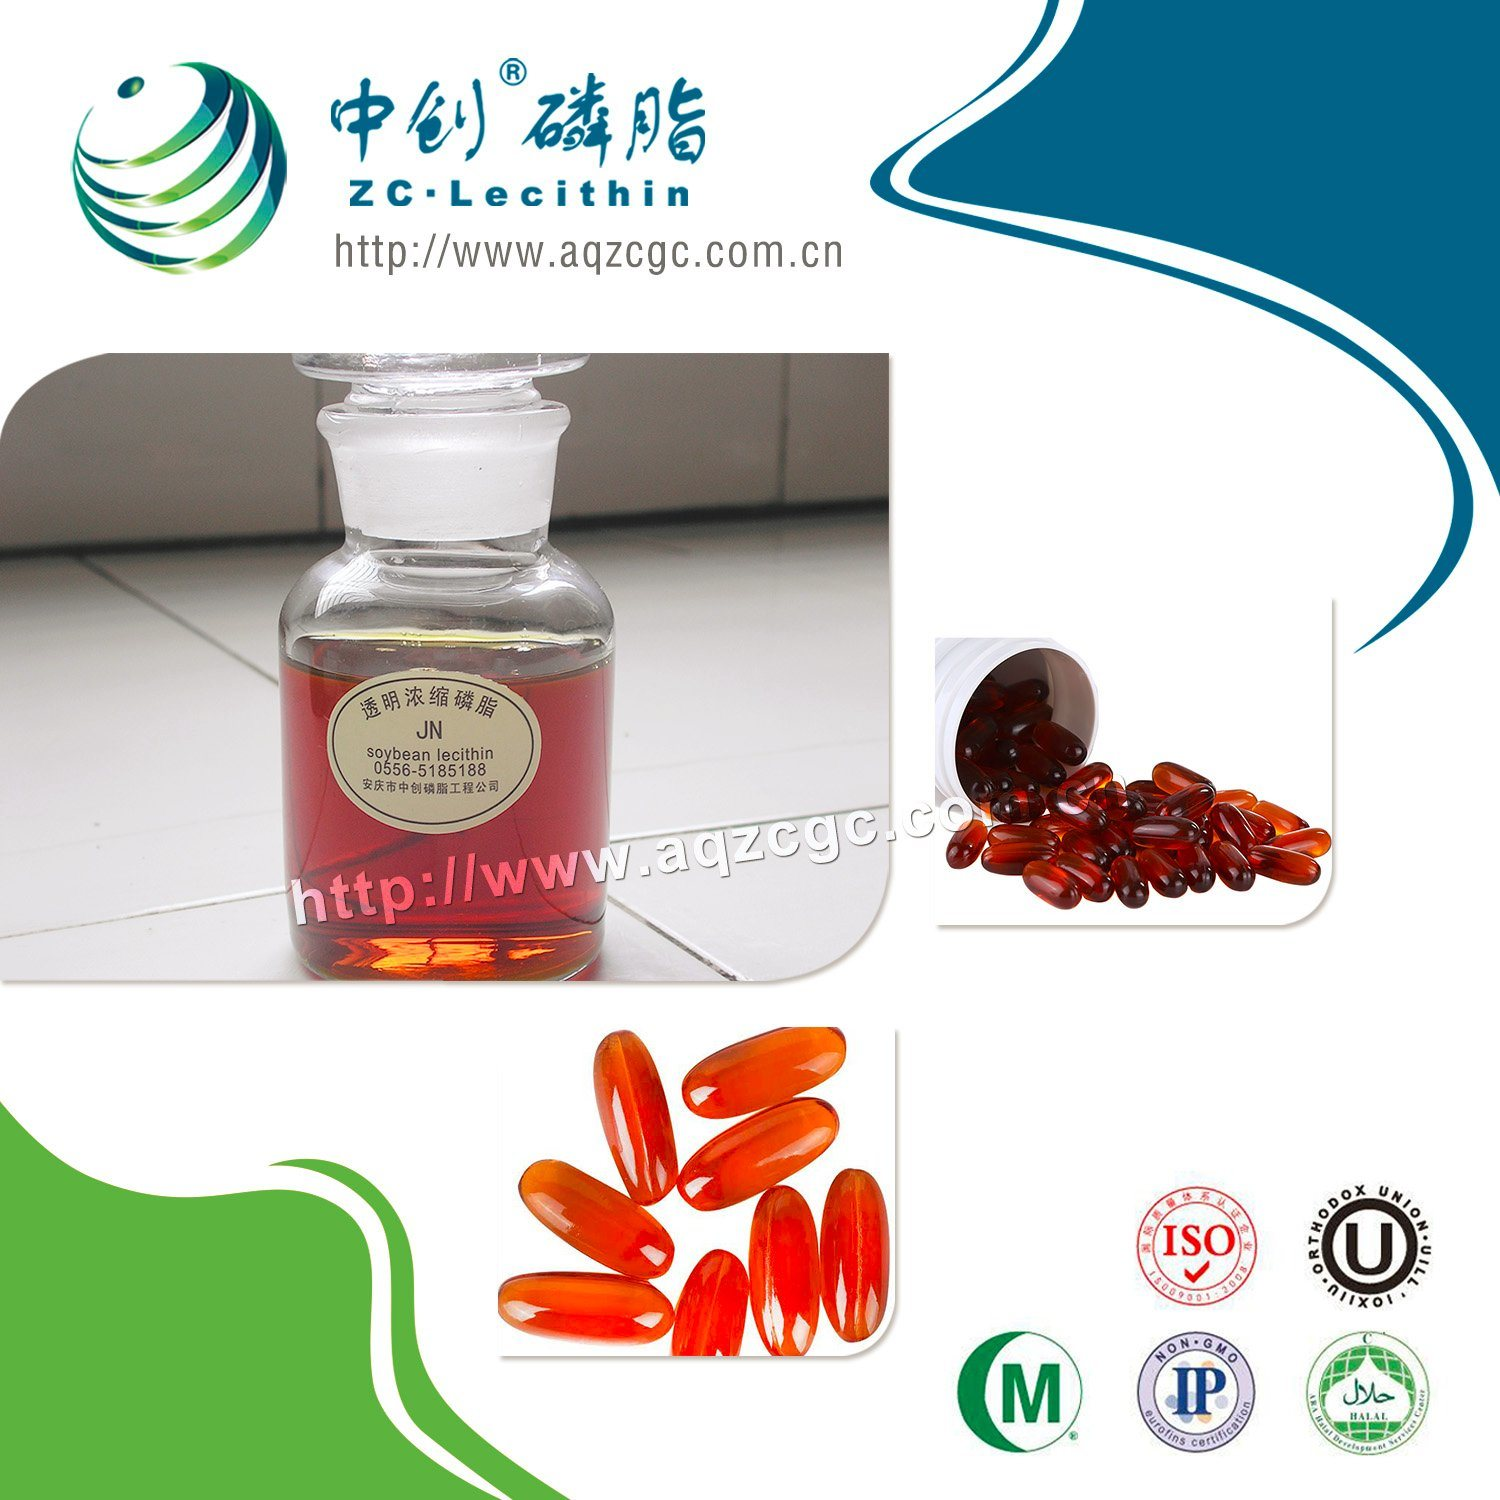 Soy Lecithin Manufacturers/Factory -Transparent Soy Lecithin Liquid with Low Viscosity for Capsule